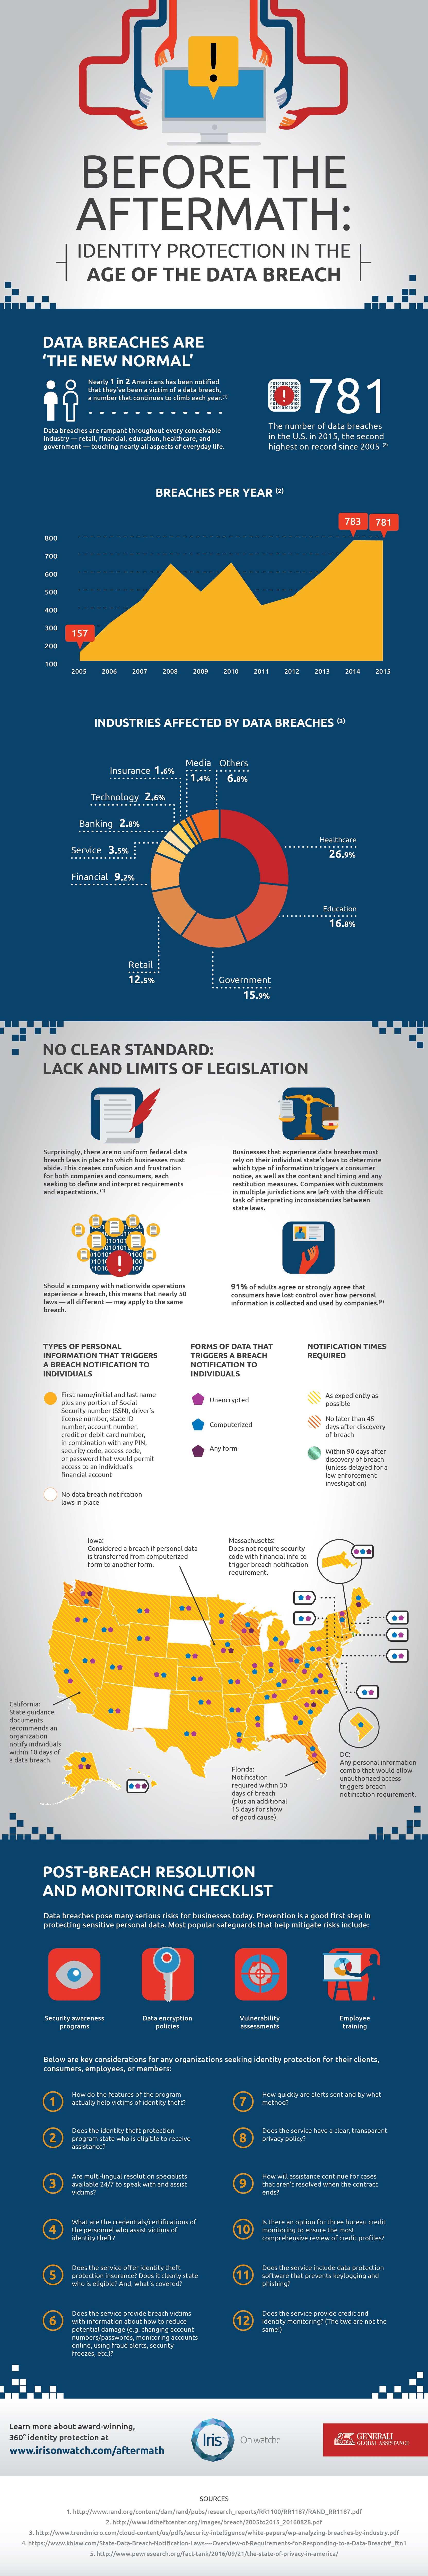 Affects of a Data Thief Infographic